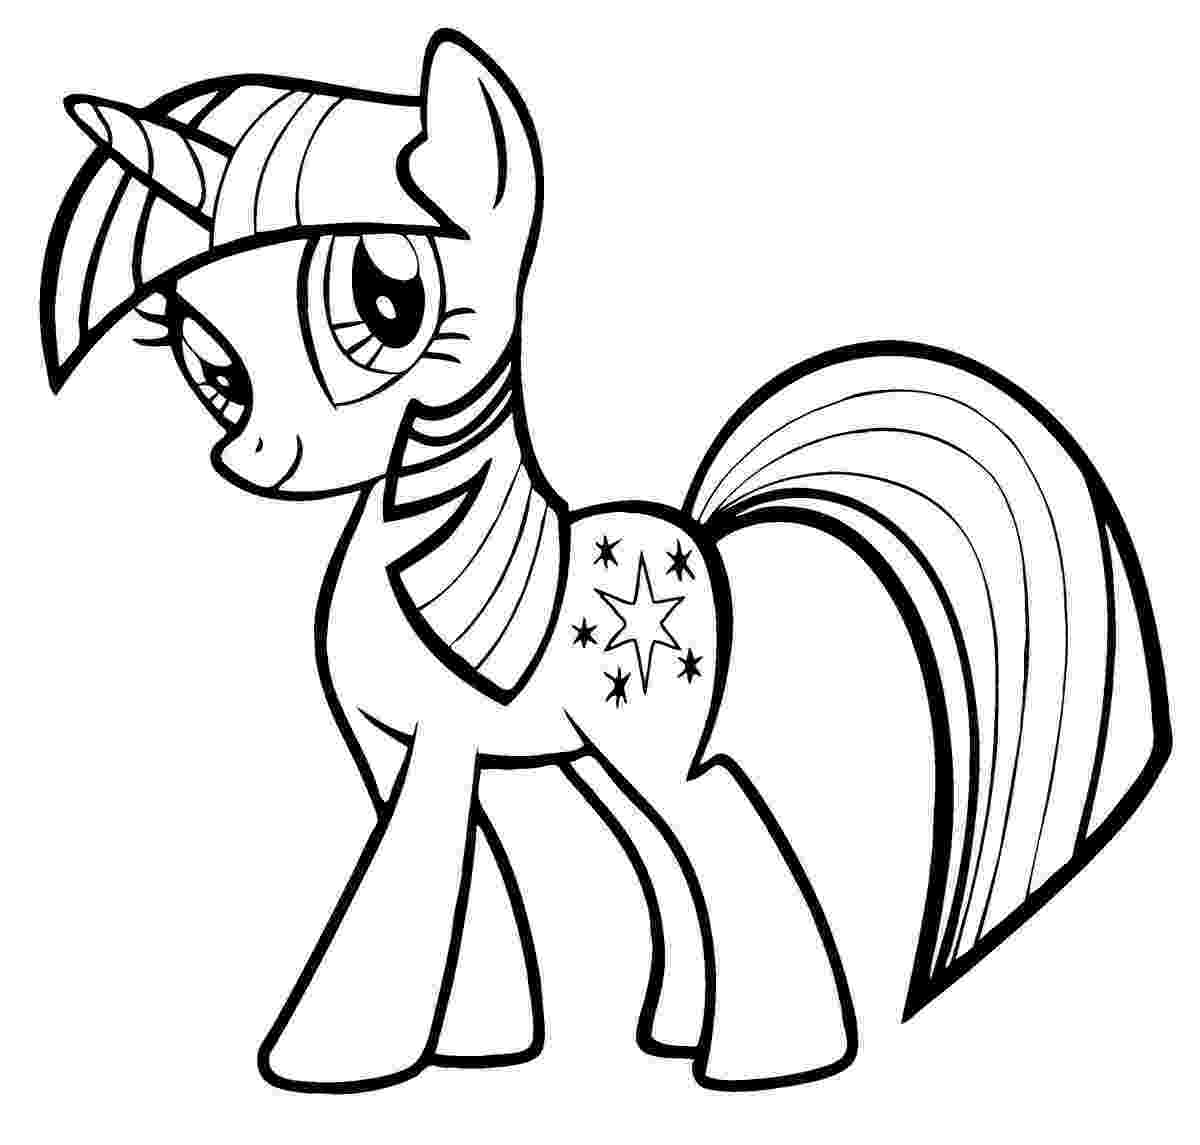 my little pony coloring images my little pony coloring pages 2018 dr odd my coloring pony little images